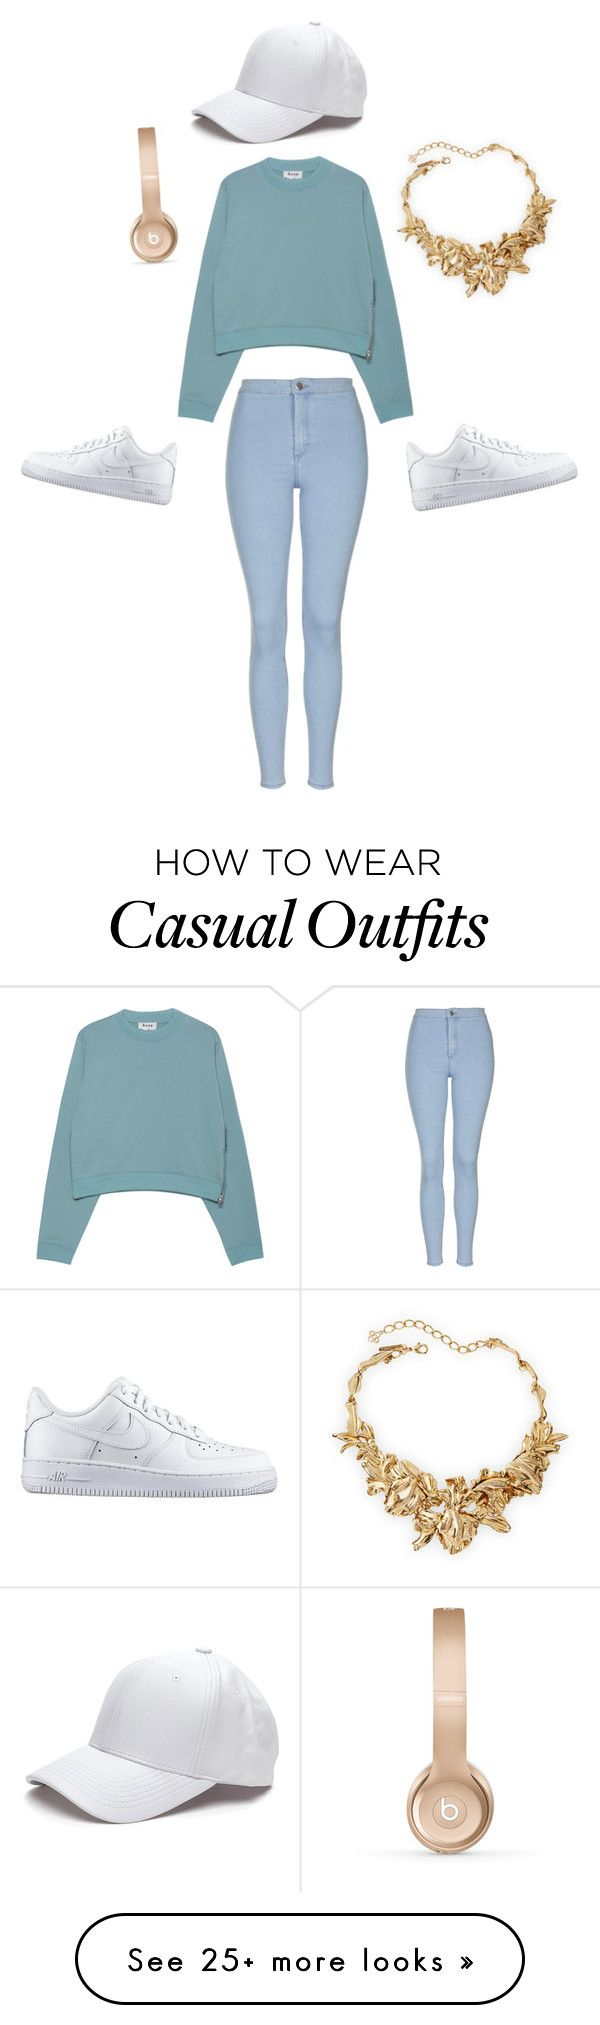 Casual Chic by joyrut on Polyvore featuring Topshop, Acne Studios, NIKE, Beats by Dr. Dre, Oscar de la Renta, womens clothing, women, female, woman and misses